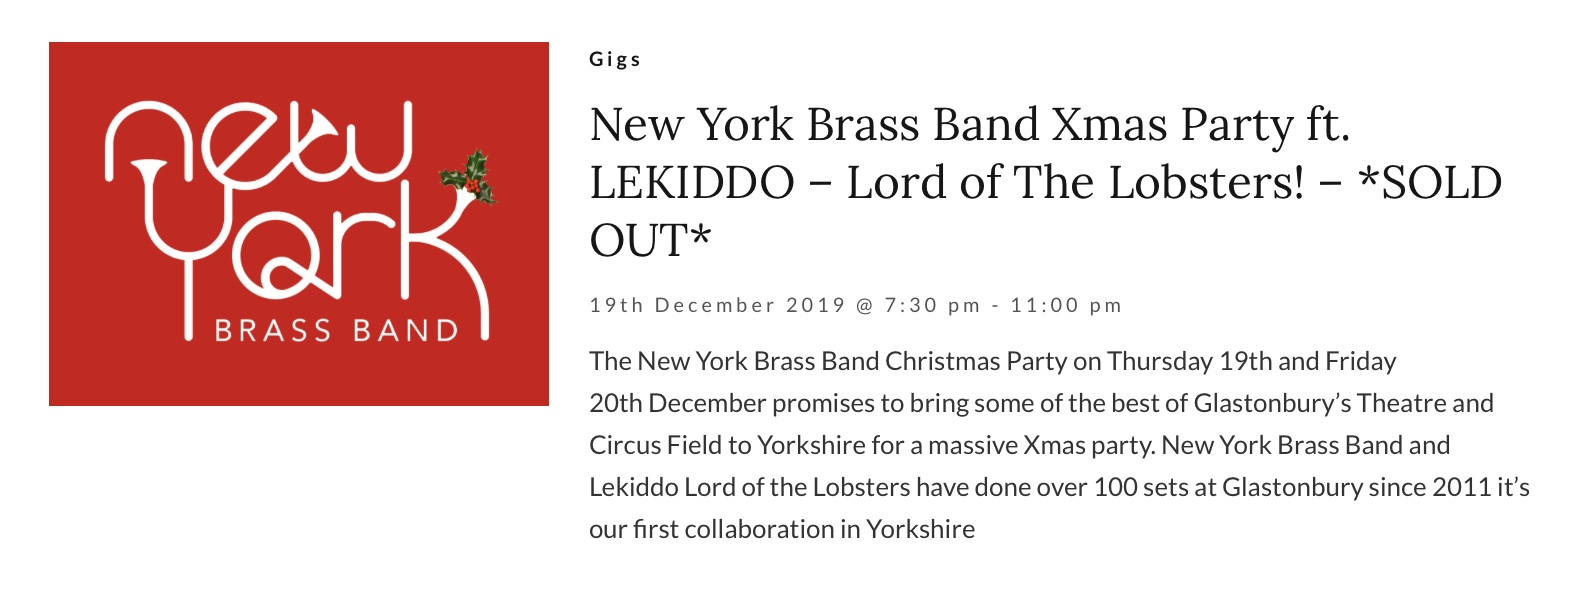 New York Brass Band Xmas Party ft. LEKIDDO – Lord of The Lobsters! – *SOLD OUT*